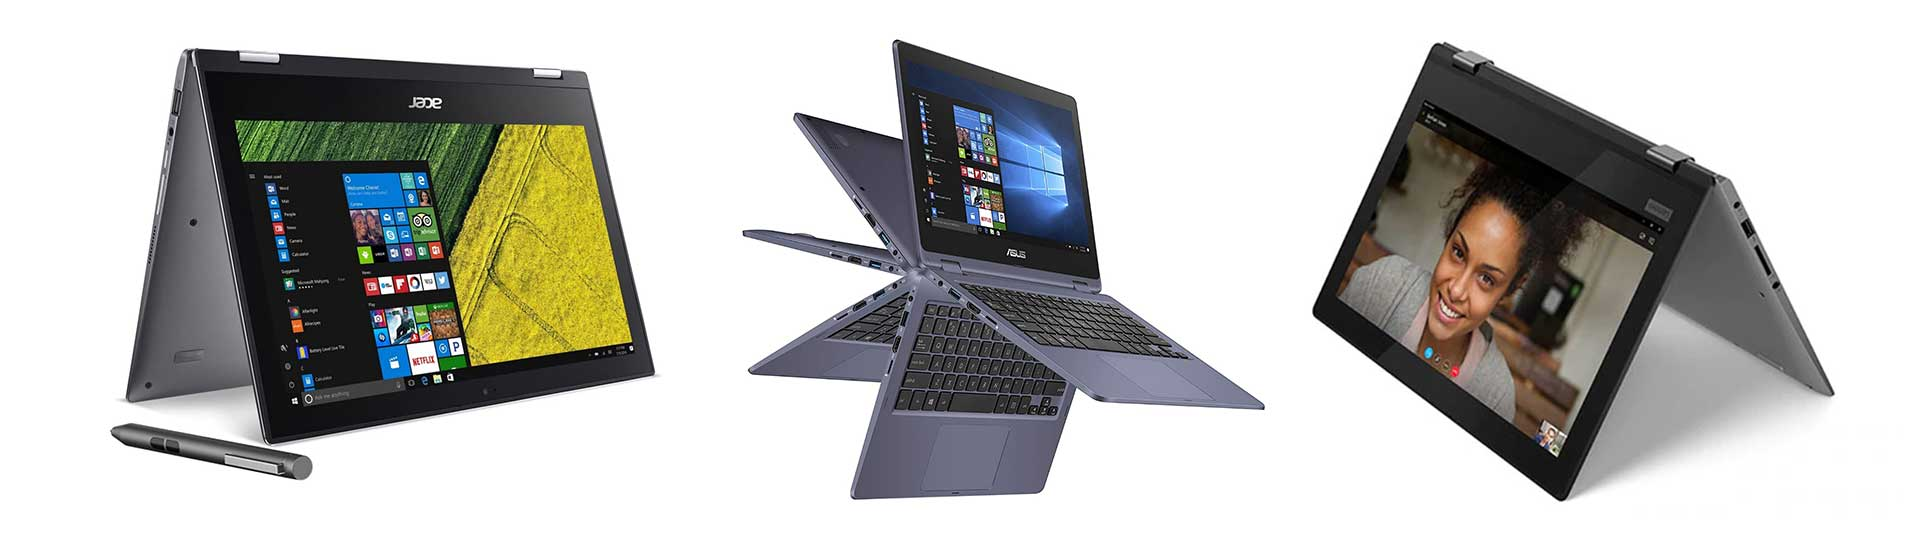 Some of the affordable 2-in-1 convertibles: Acer Spin1, Asus VivoBook Flip 11 and Lenovo Flex 11